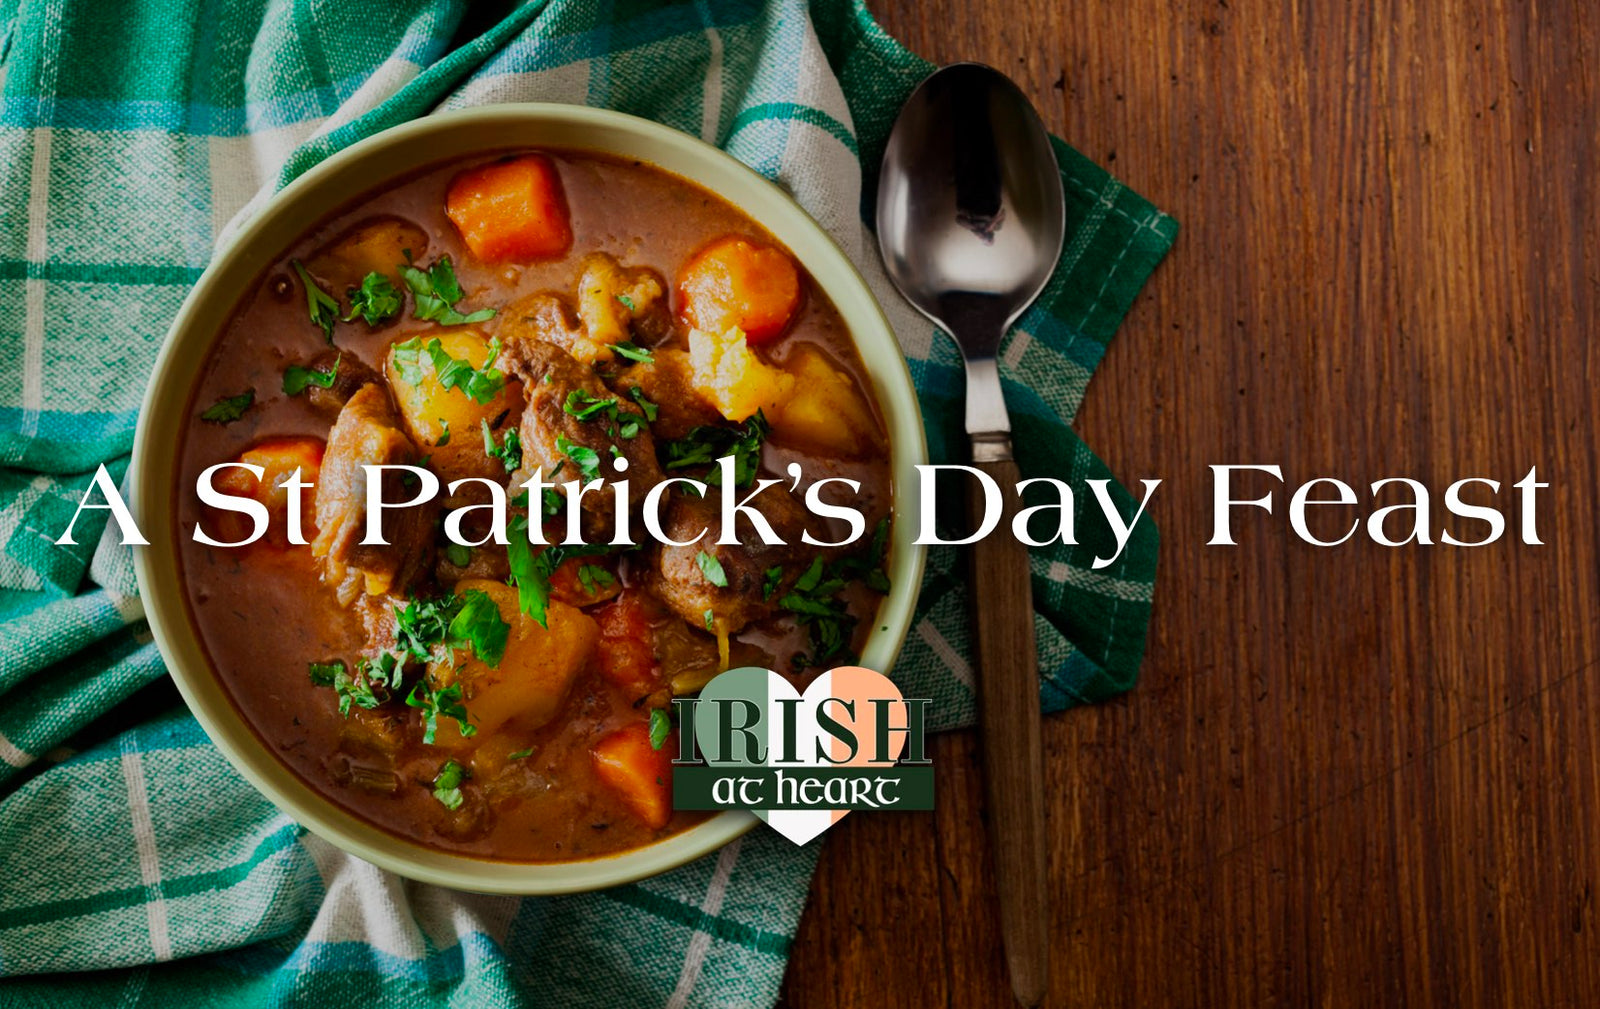 A St Patrick's Day Feast